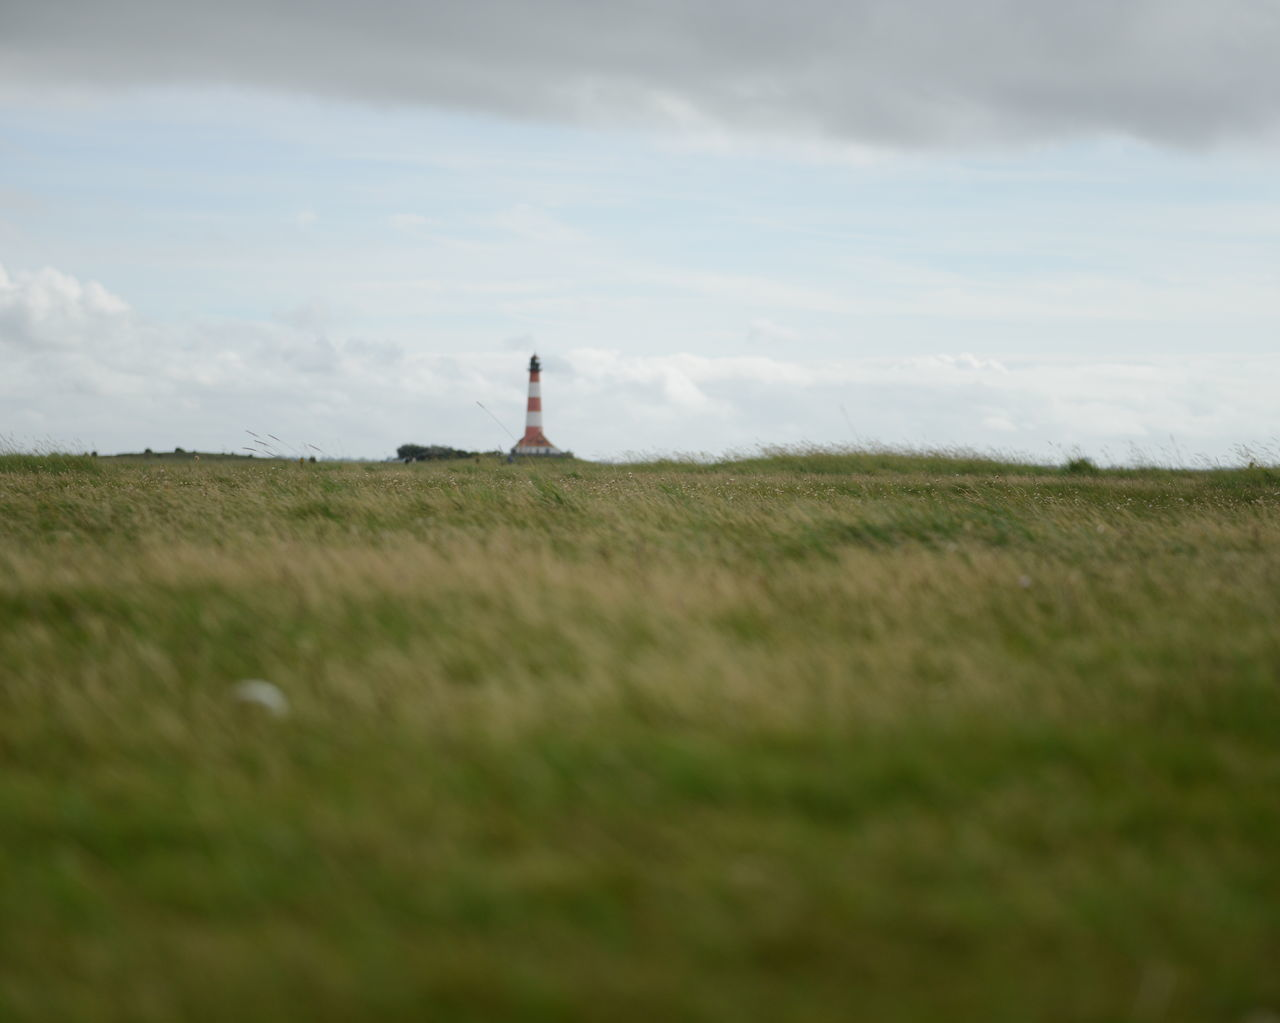 grass, field, cloud - sky, sky, nature, built structure, architecture, no people, lighthouse, day, building exterior, outdoors, beauty in nature, landscape, windmill